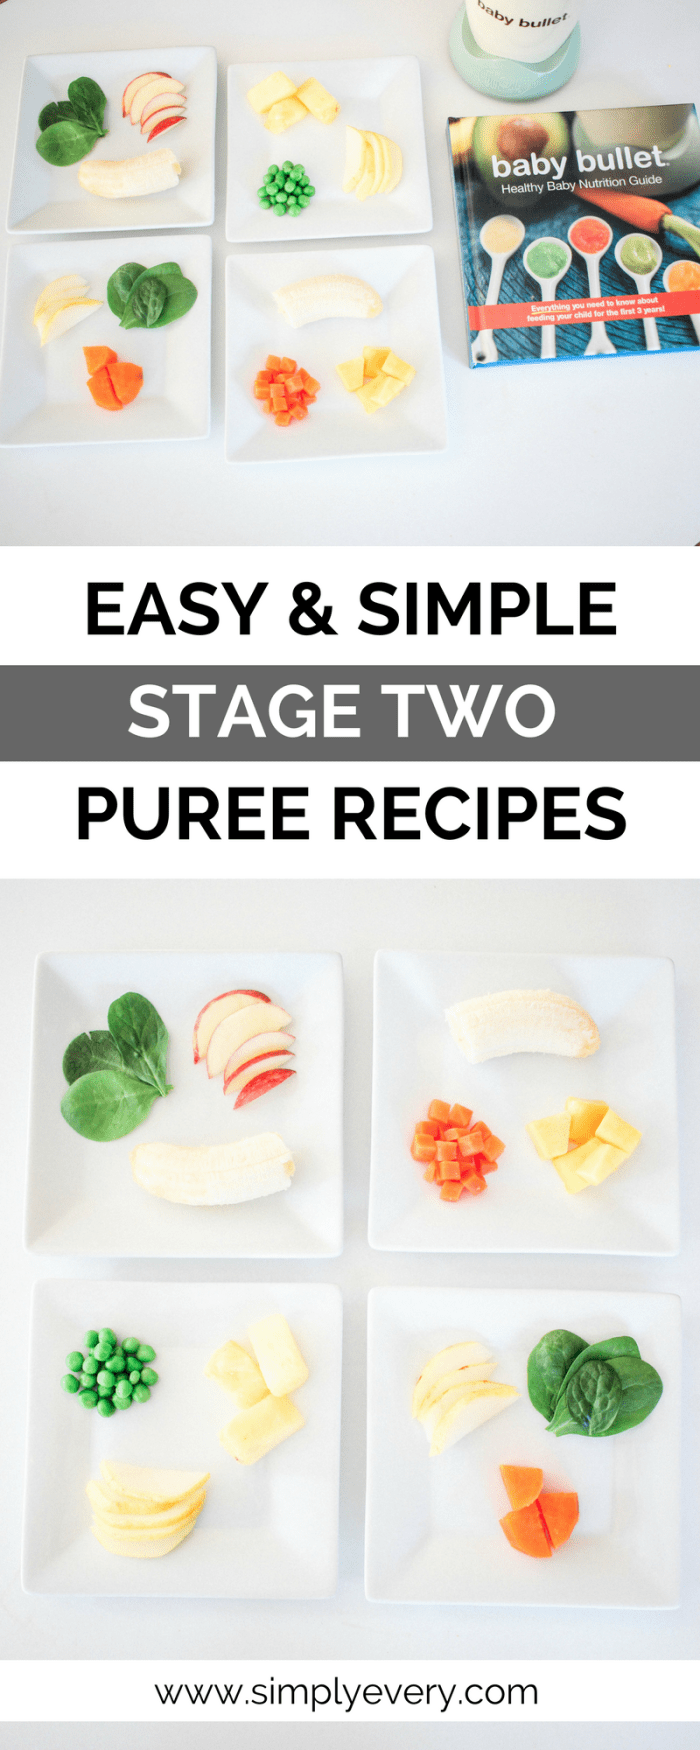 Easy Simple Stage Two Puree Recipes